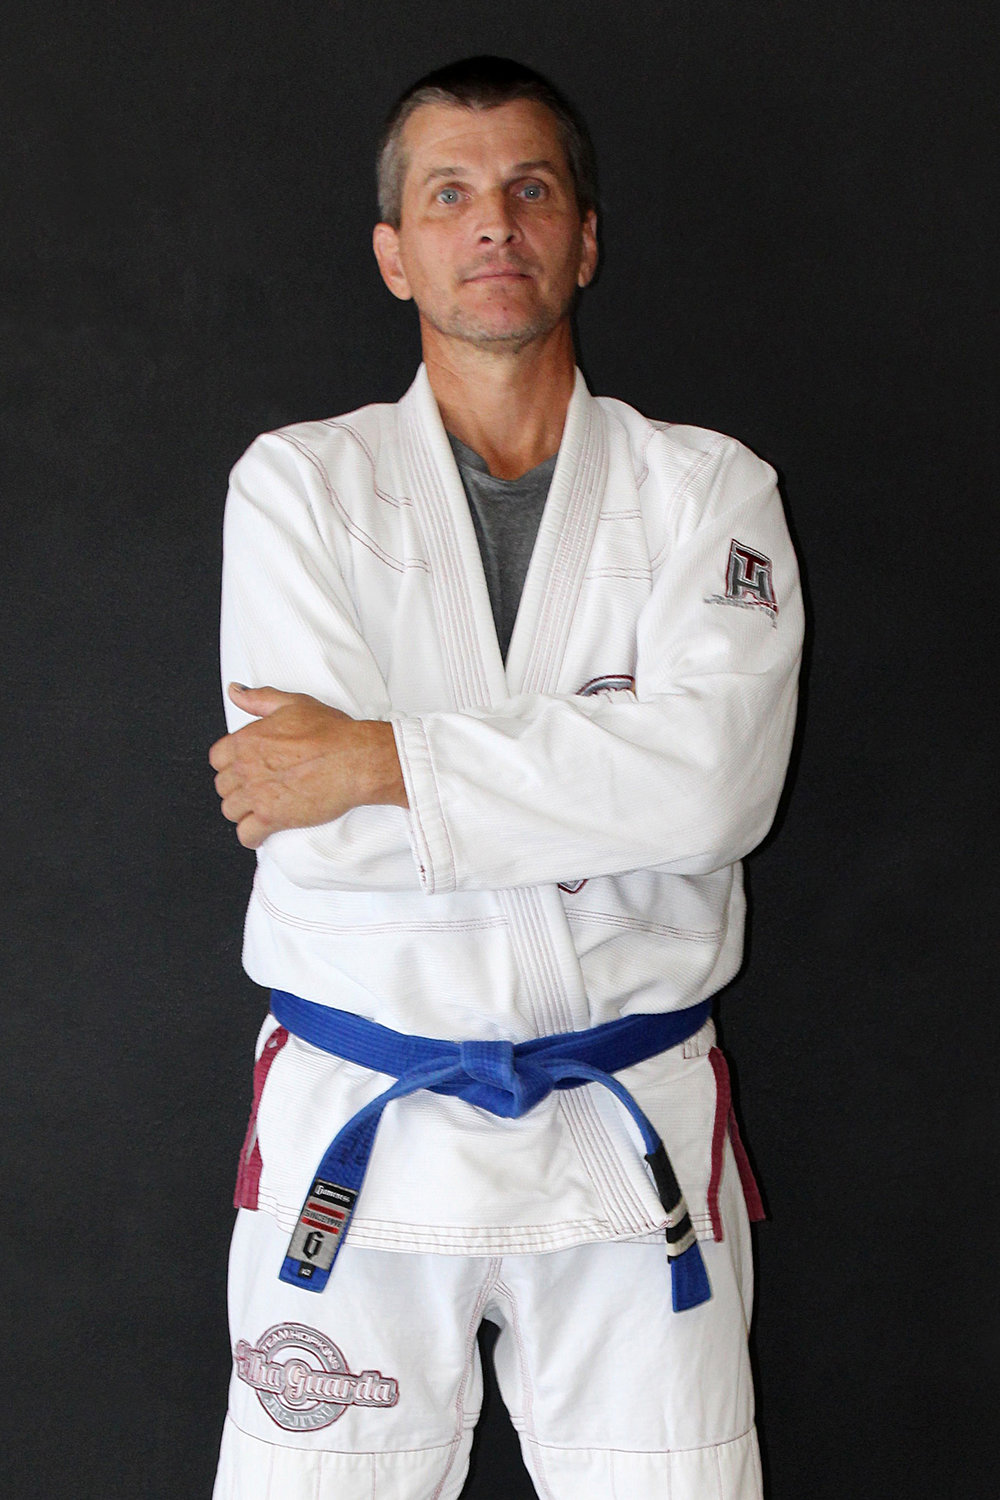 David Hollingsworth - InstructorDavid is a Gracie Jiu-Jitsu Blue Belt under Black Belt Mike Braswell.